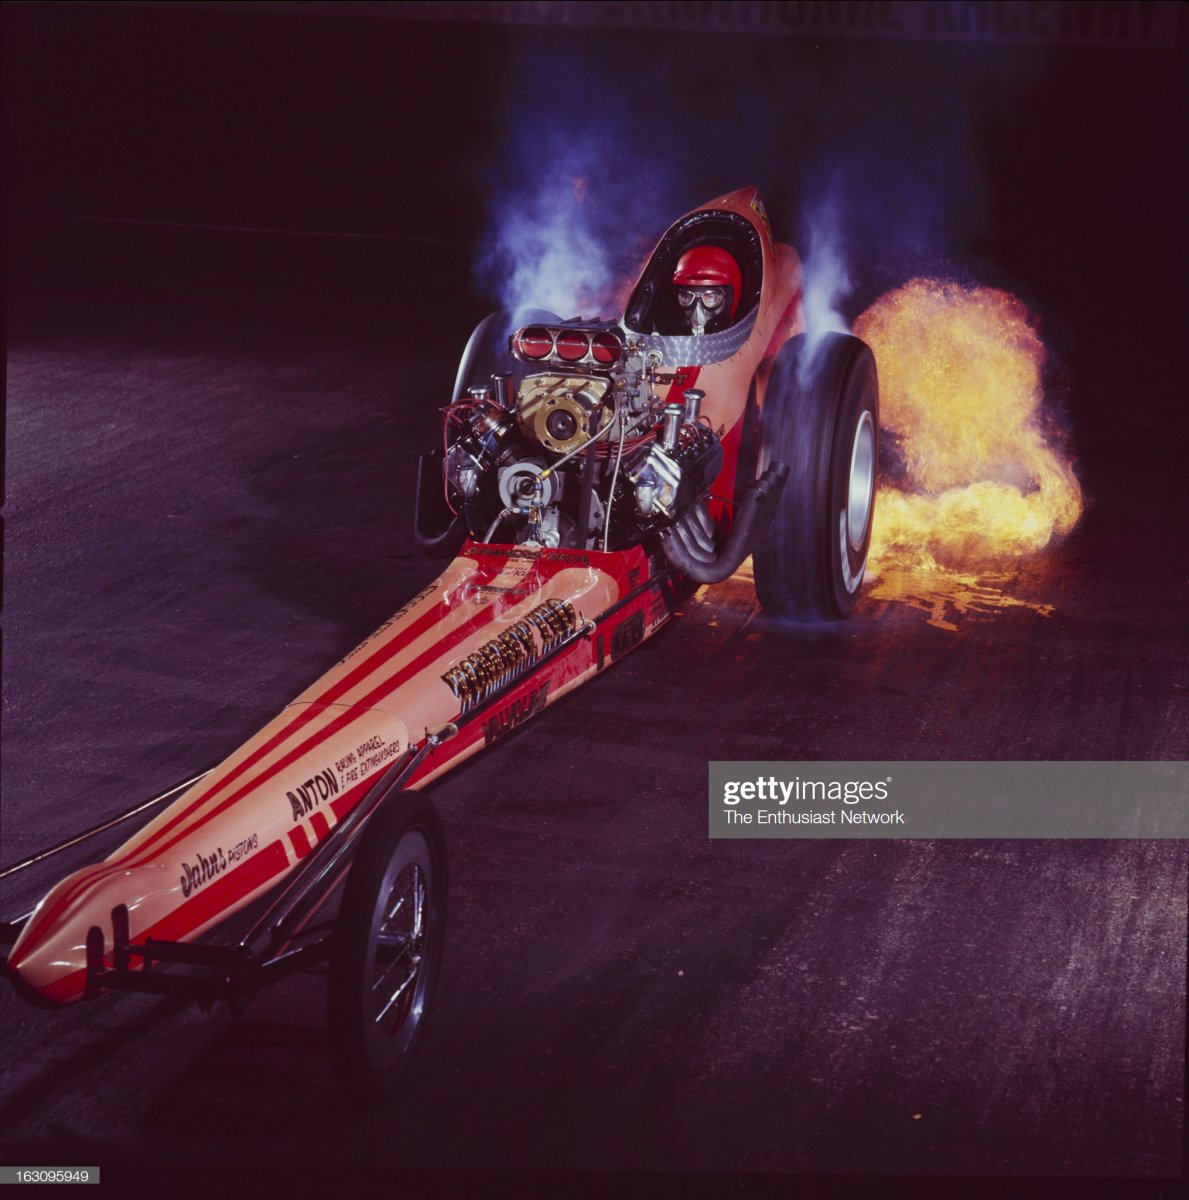 1  Tommy Ivo With Dragster. Tommy Ivo lights it up in his slingshot dragster1.jpg